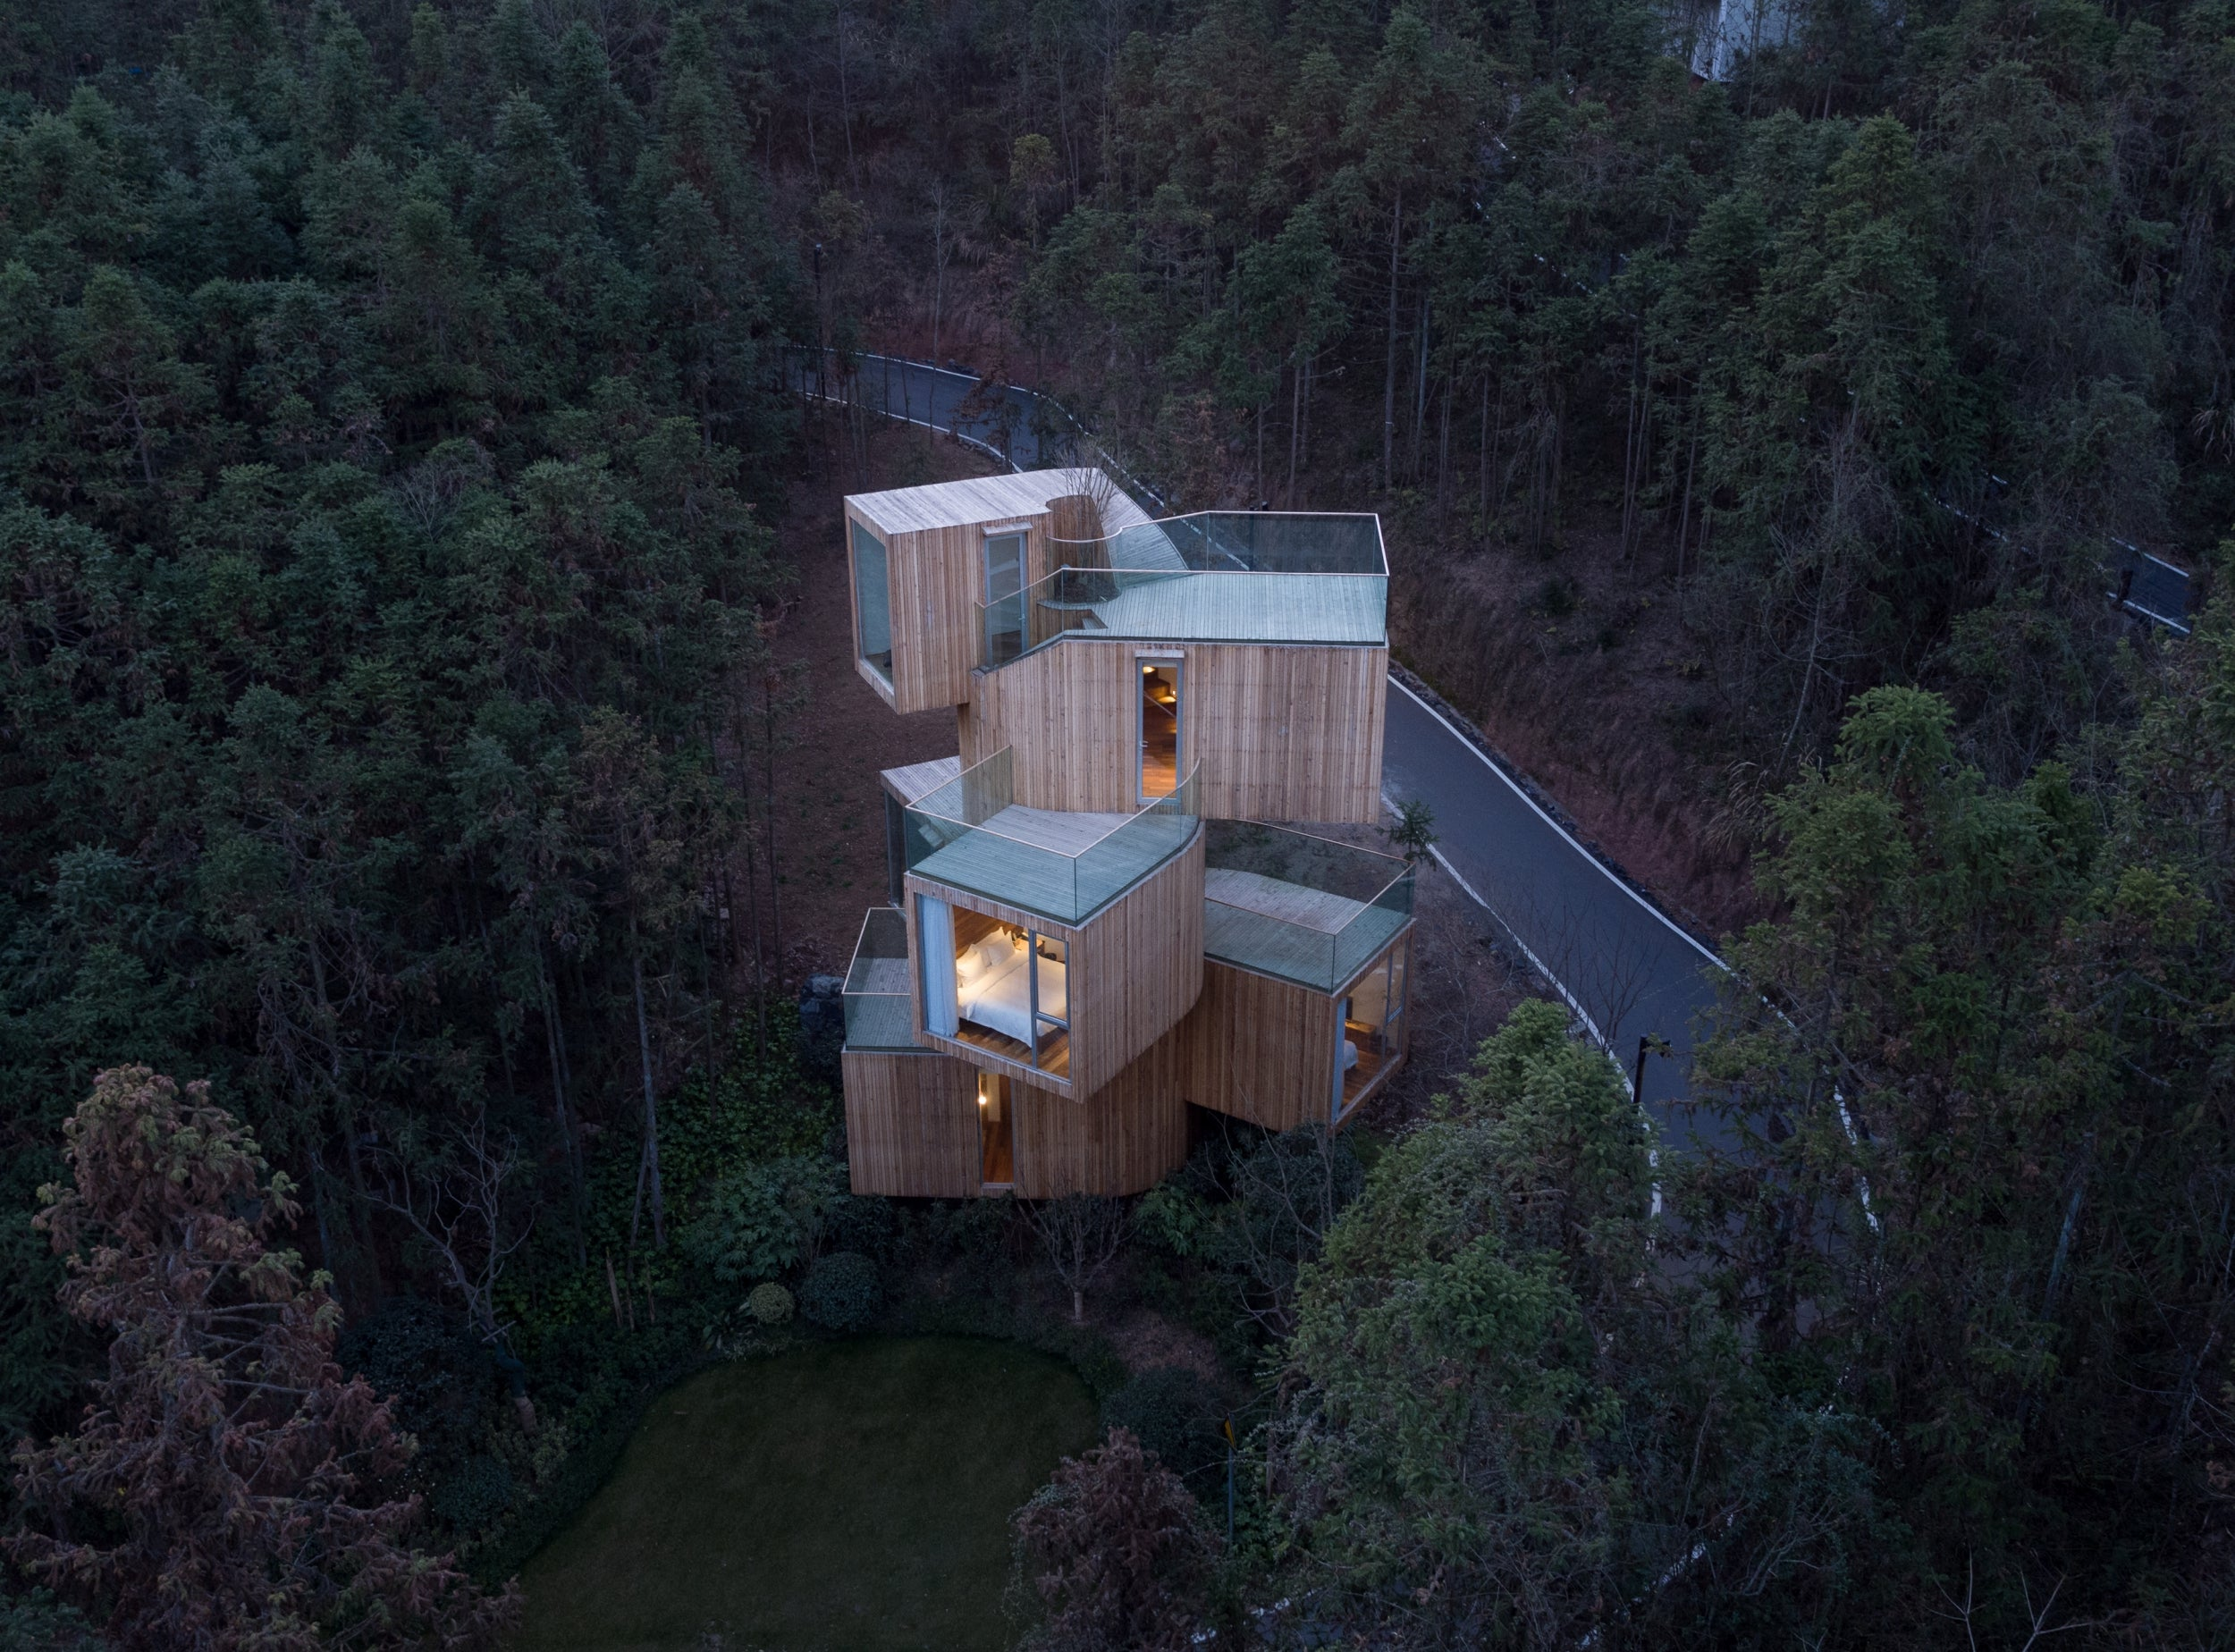 Edgy architecture: Discover unique buildings in the most impossible places